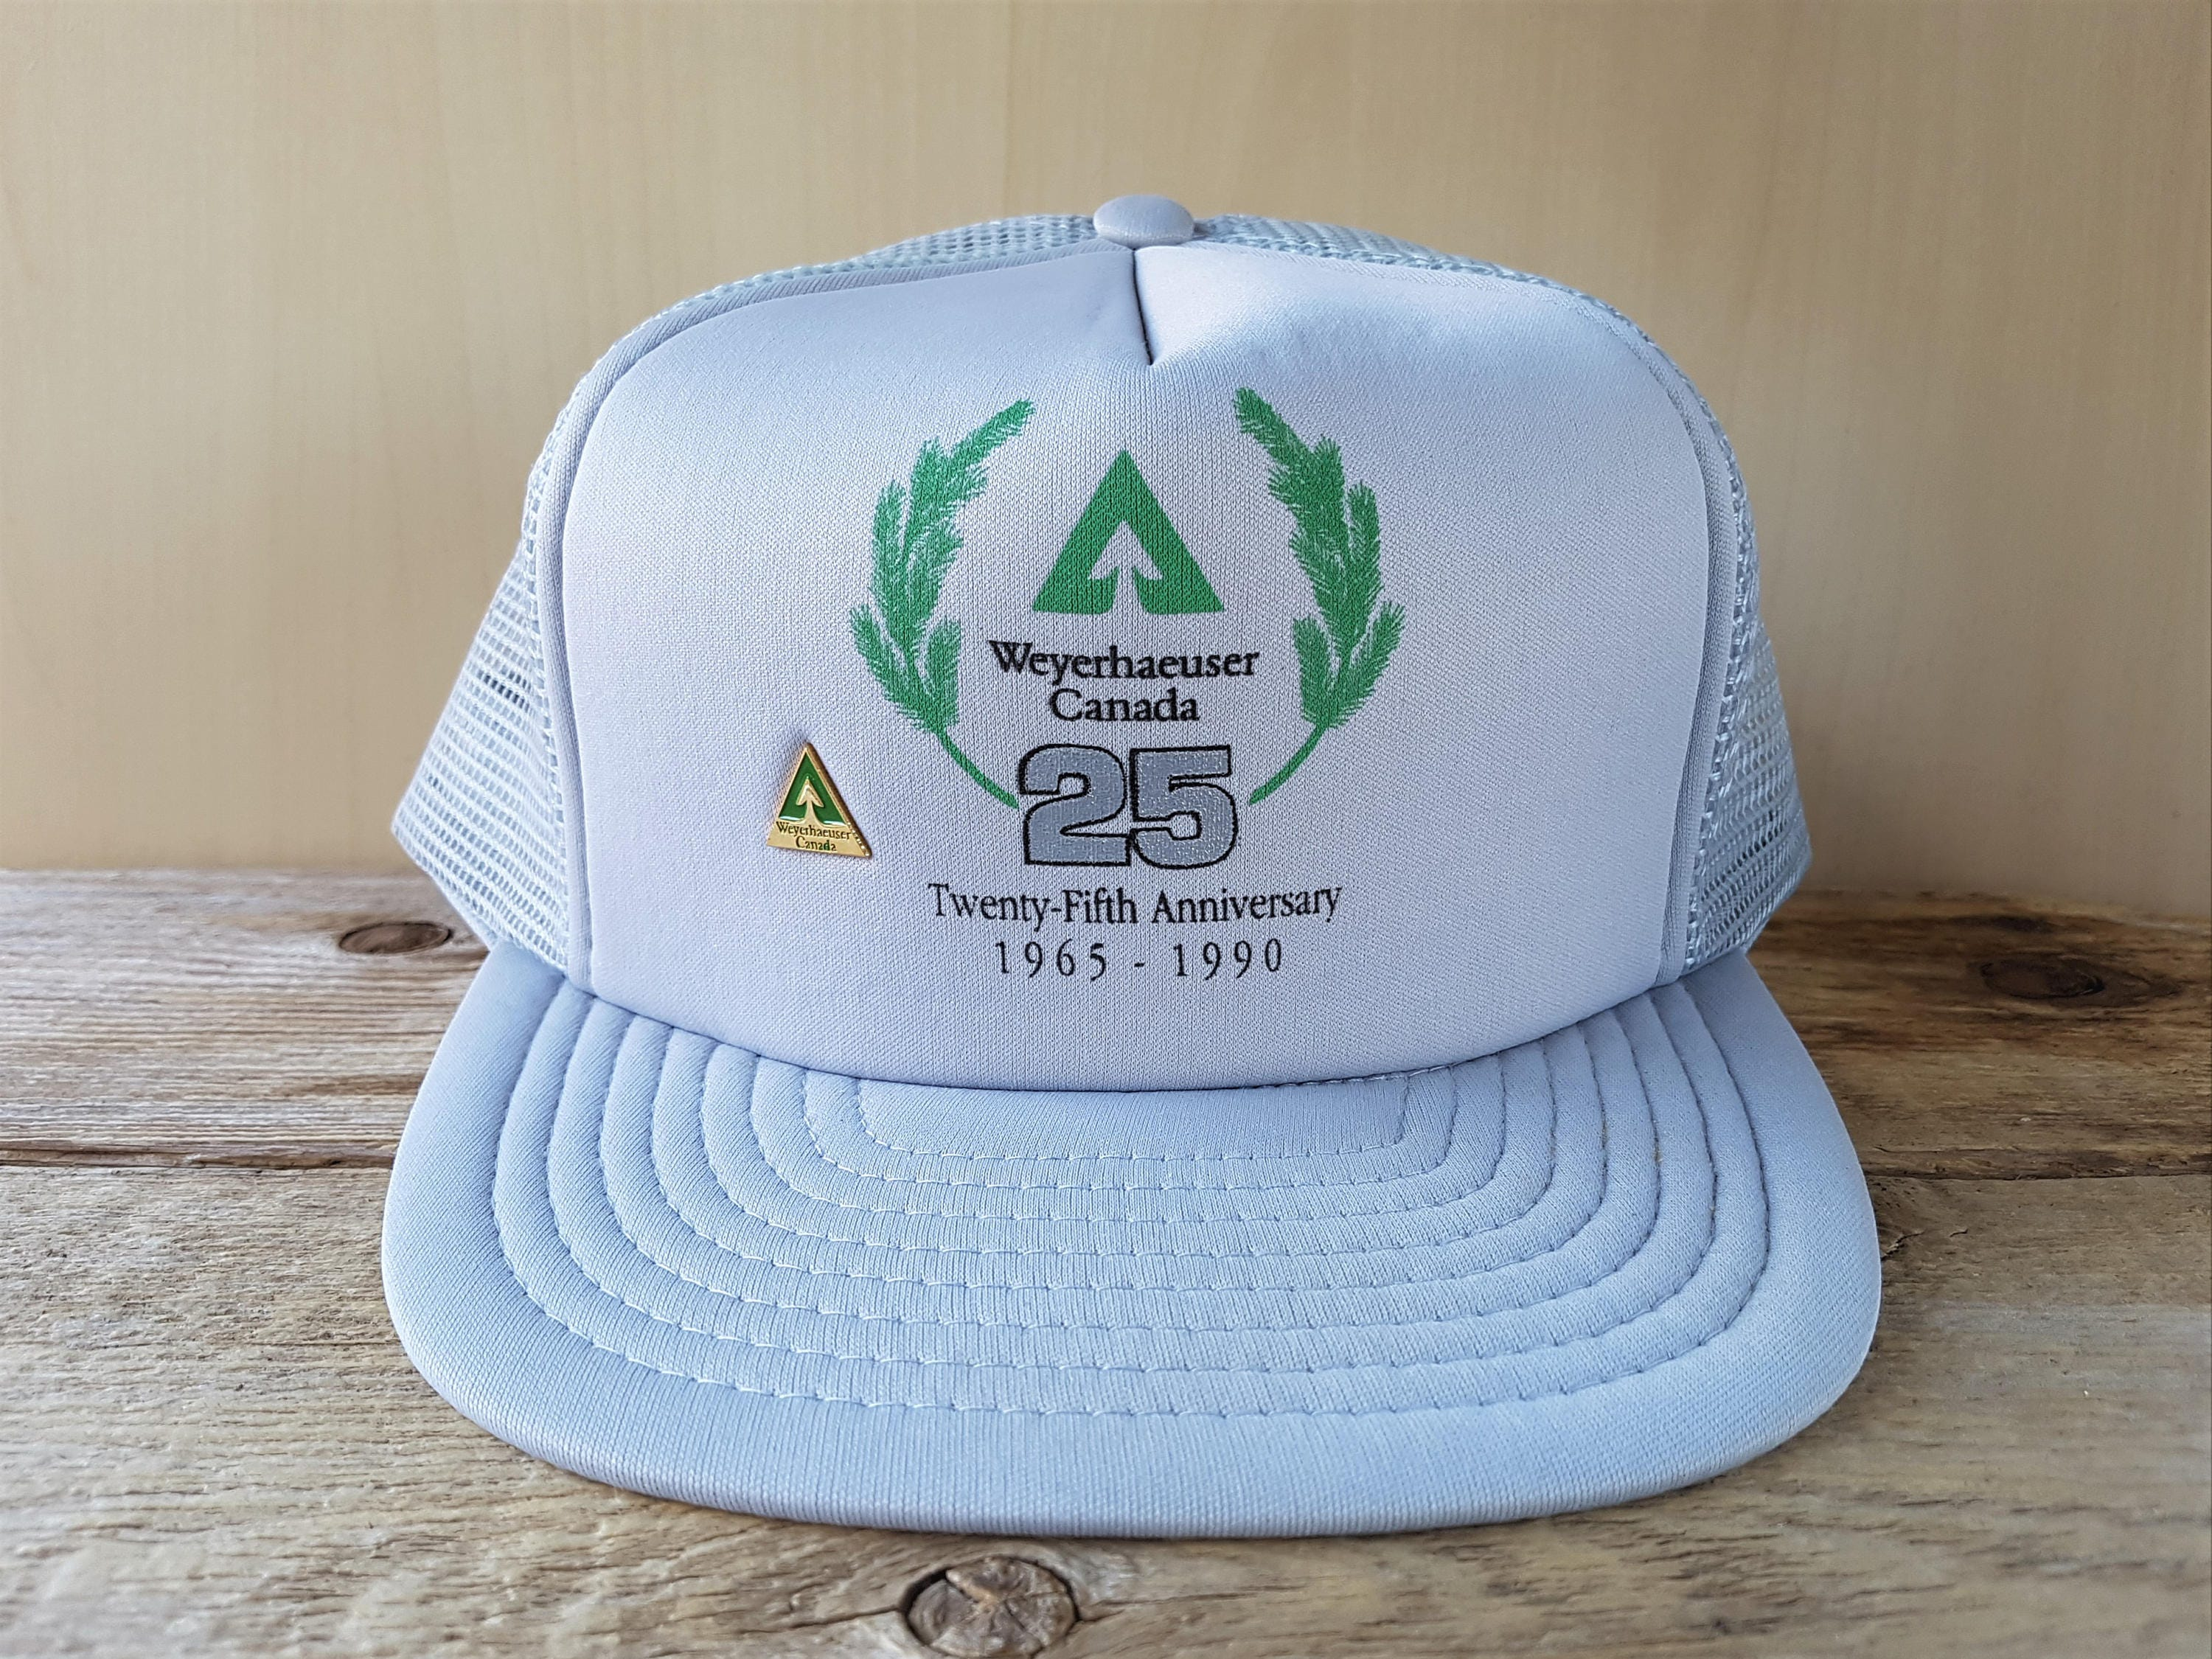 WEYERHAEUSER CANADA 25th Anniversary Vintage 1990 Gray Mesh Trucker  Snapback Hat with attached Pin Forestry Promo Forest Products Cap Wilson